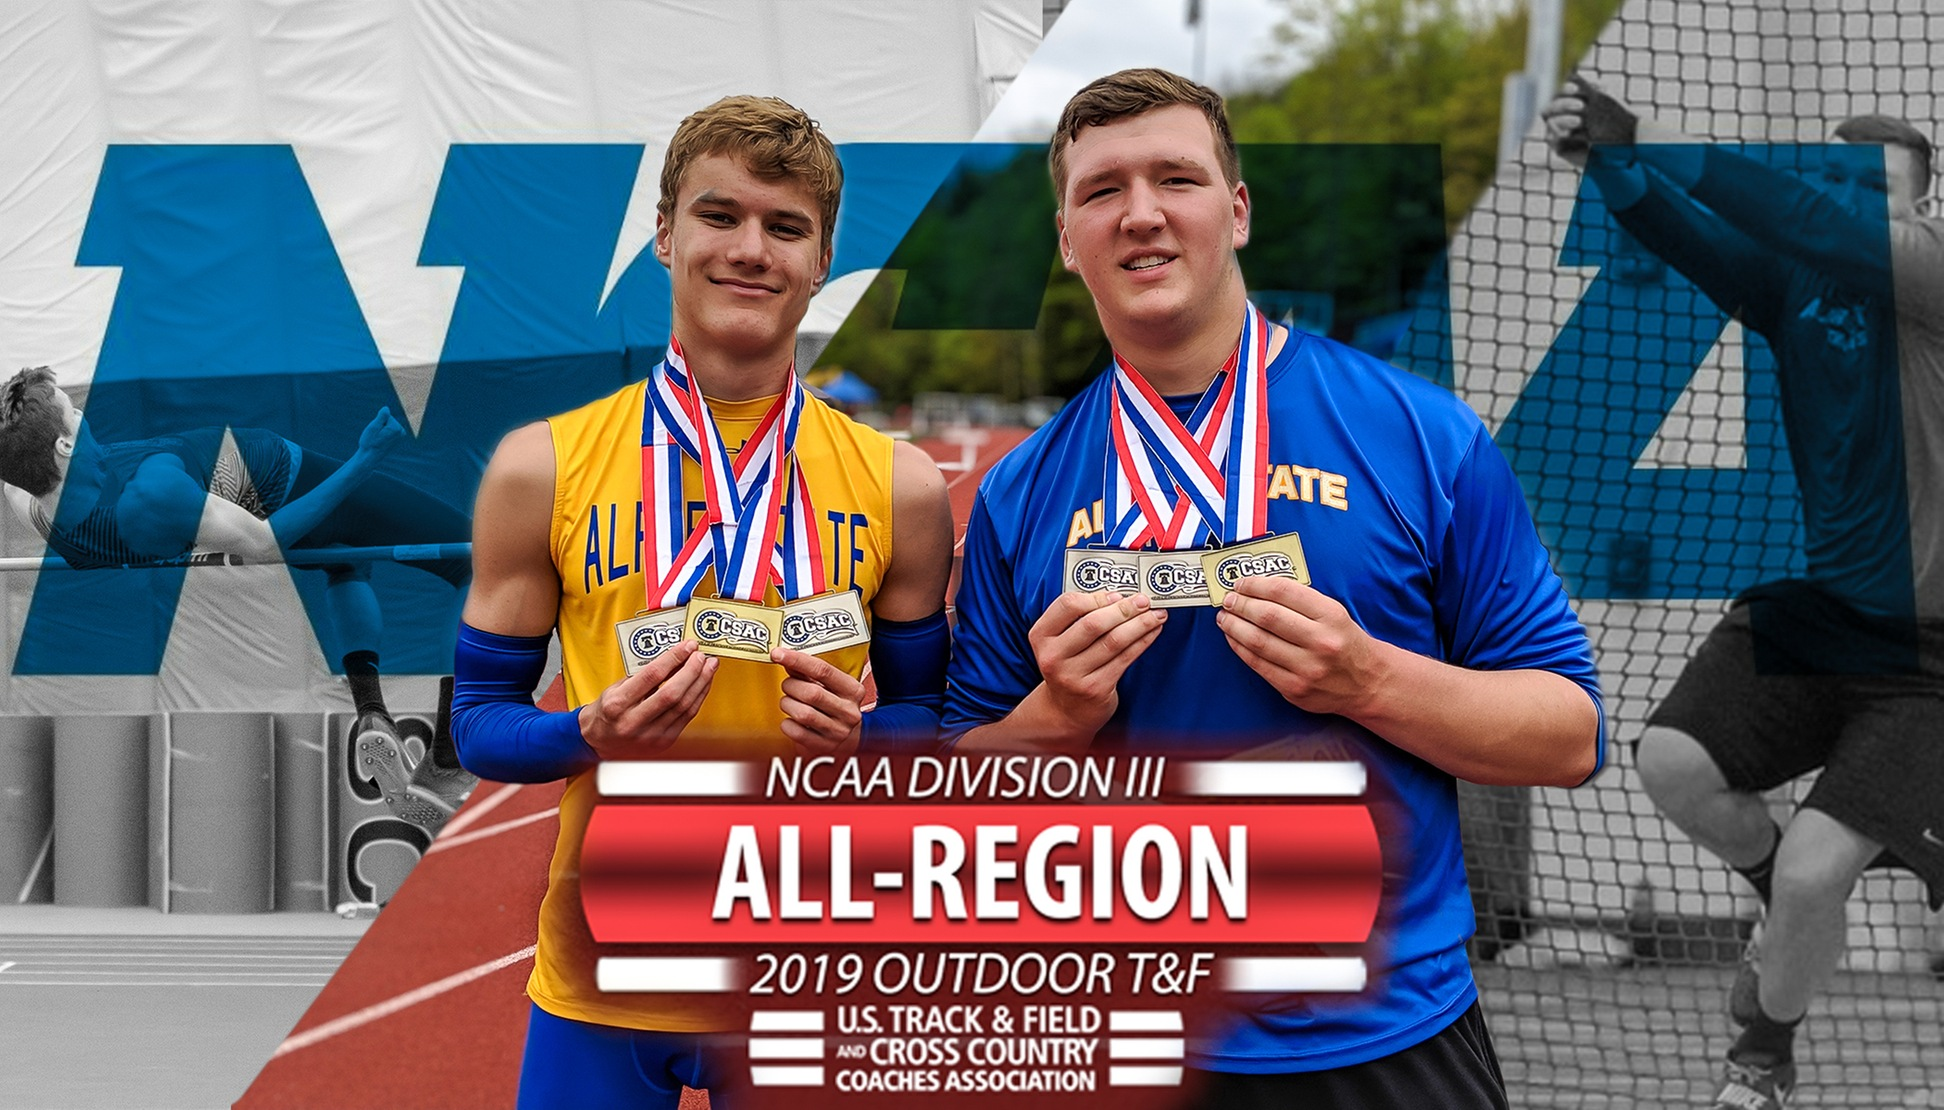 Kemsley and Wadsworth Named All-Region for Outdoor Season